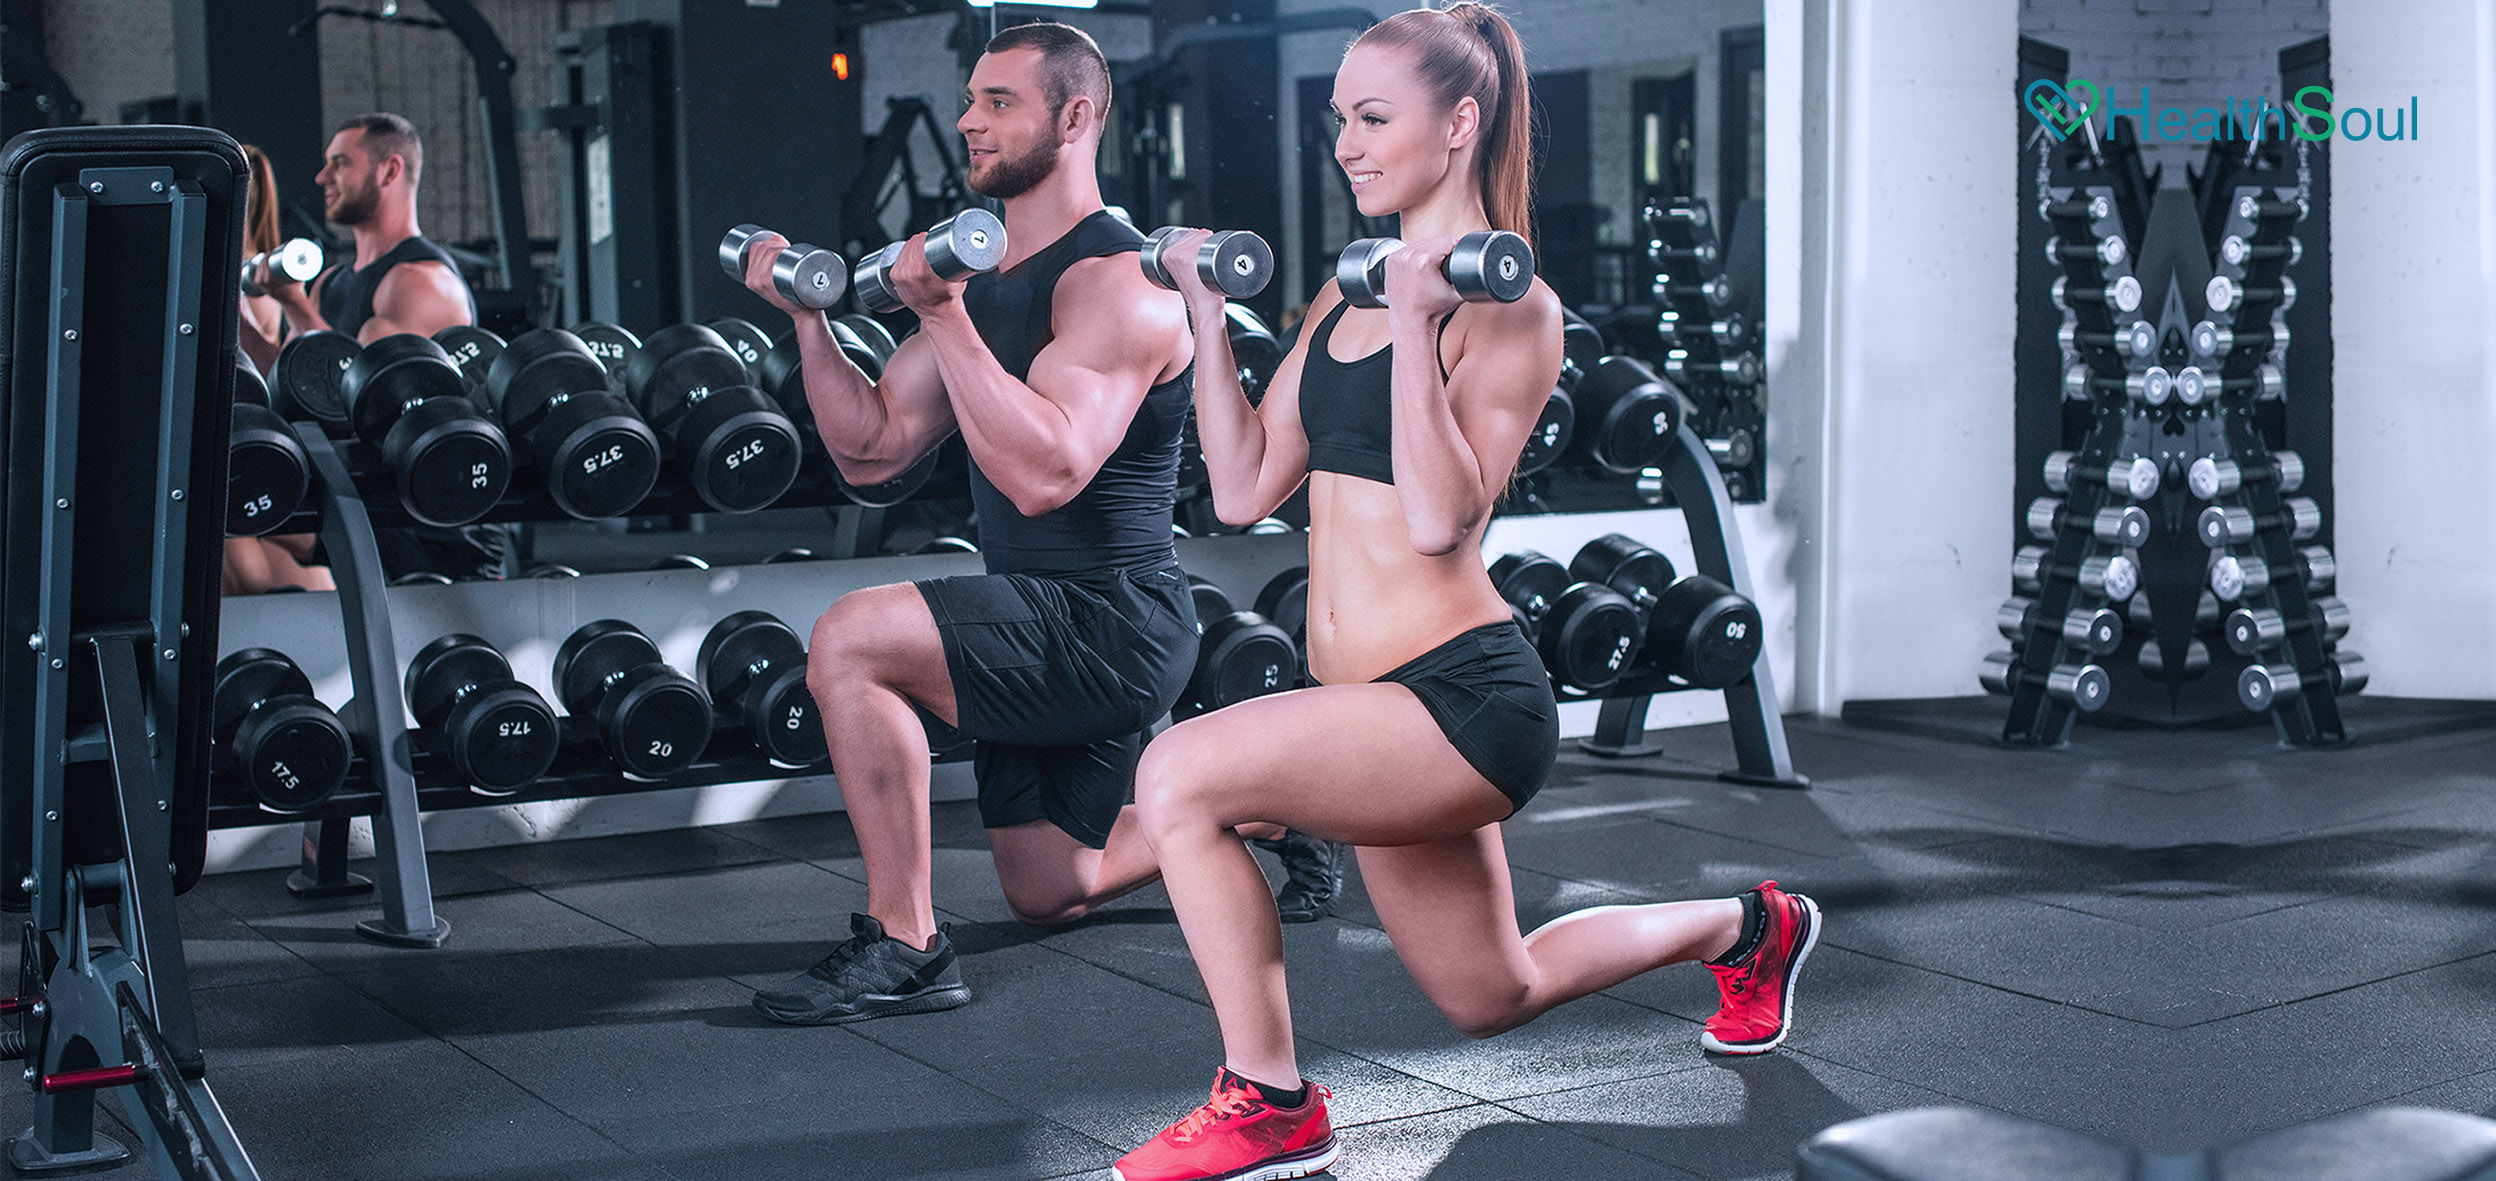 Maximize Your Gym Session - 5 Tips for Working Harder | HealthSoul